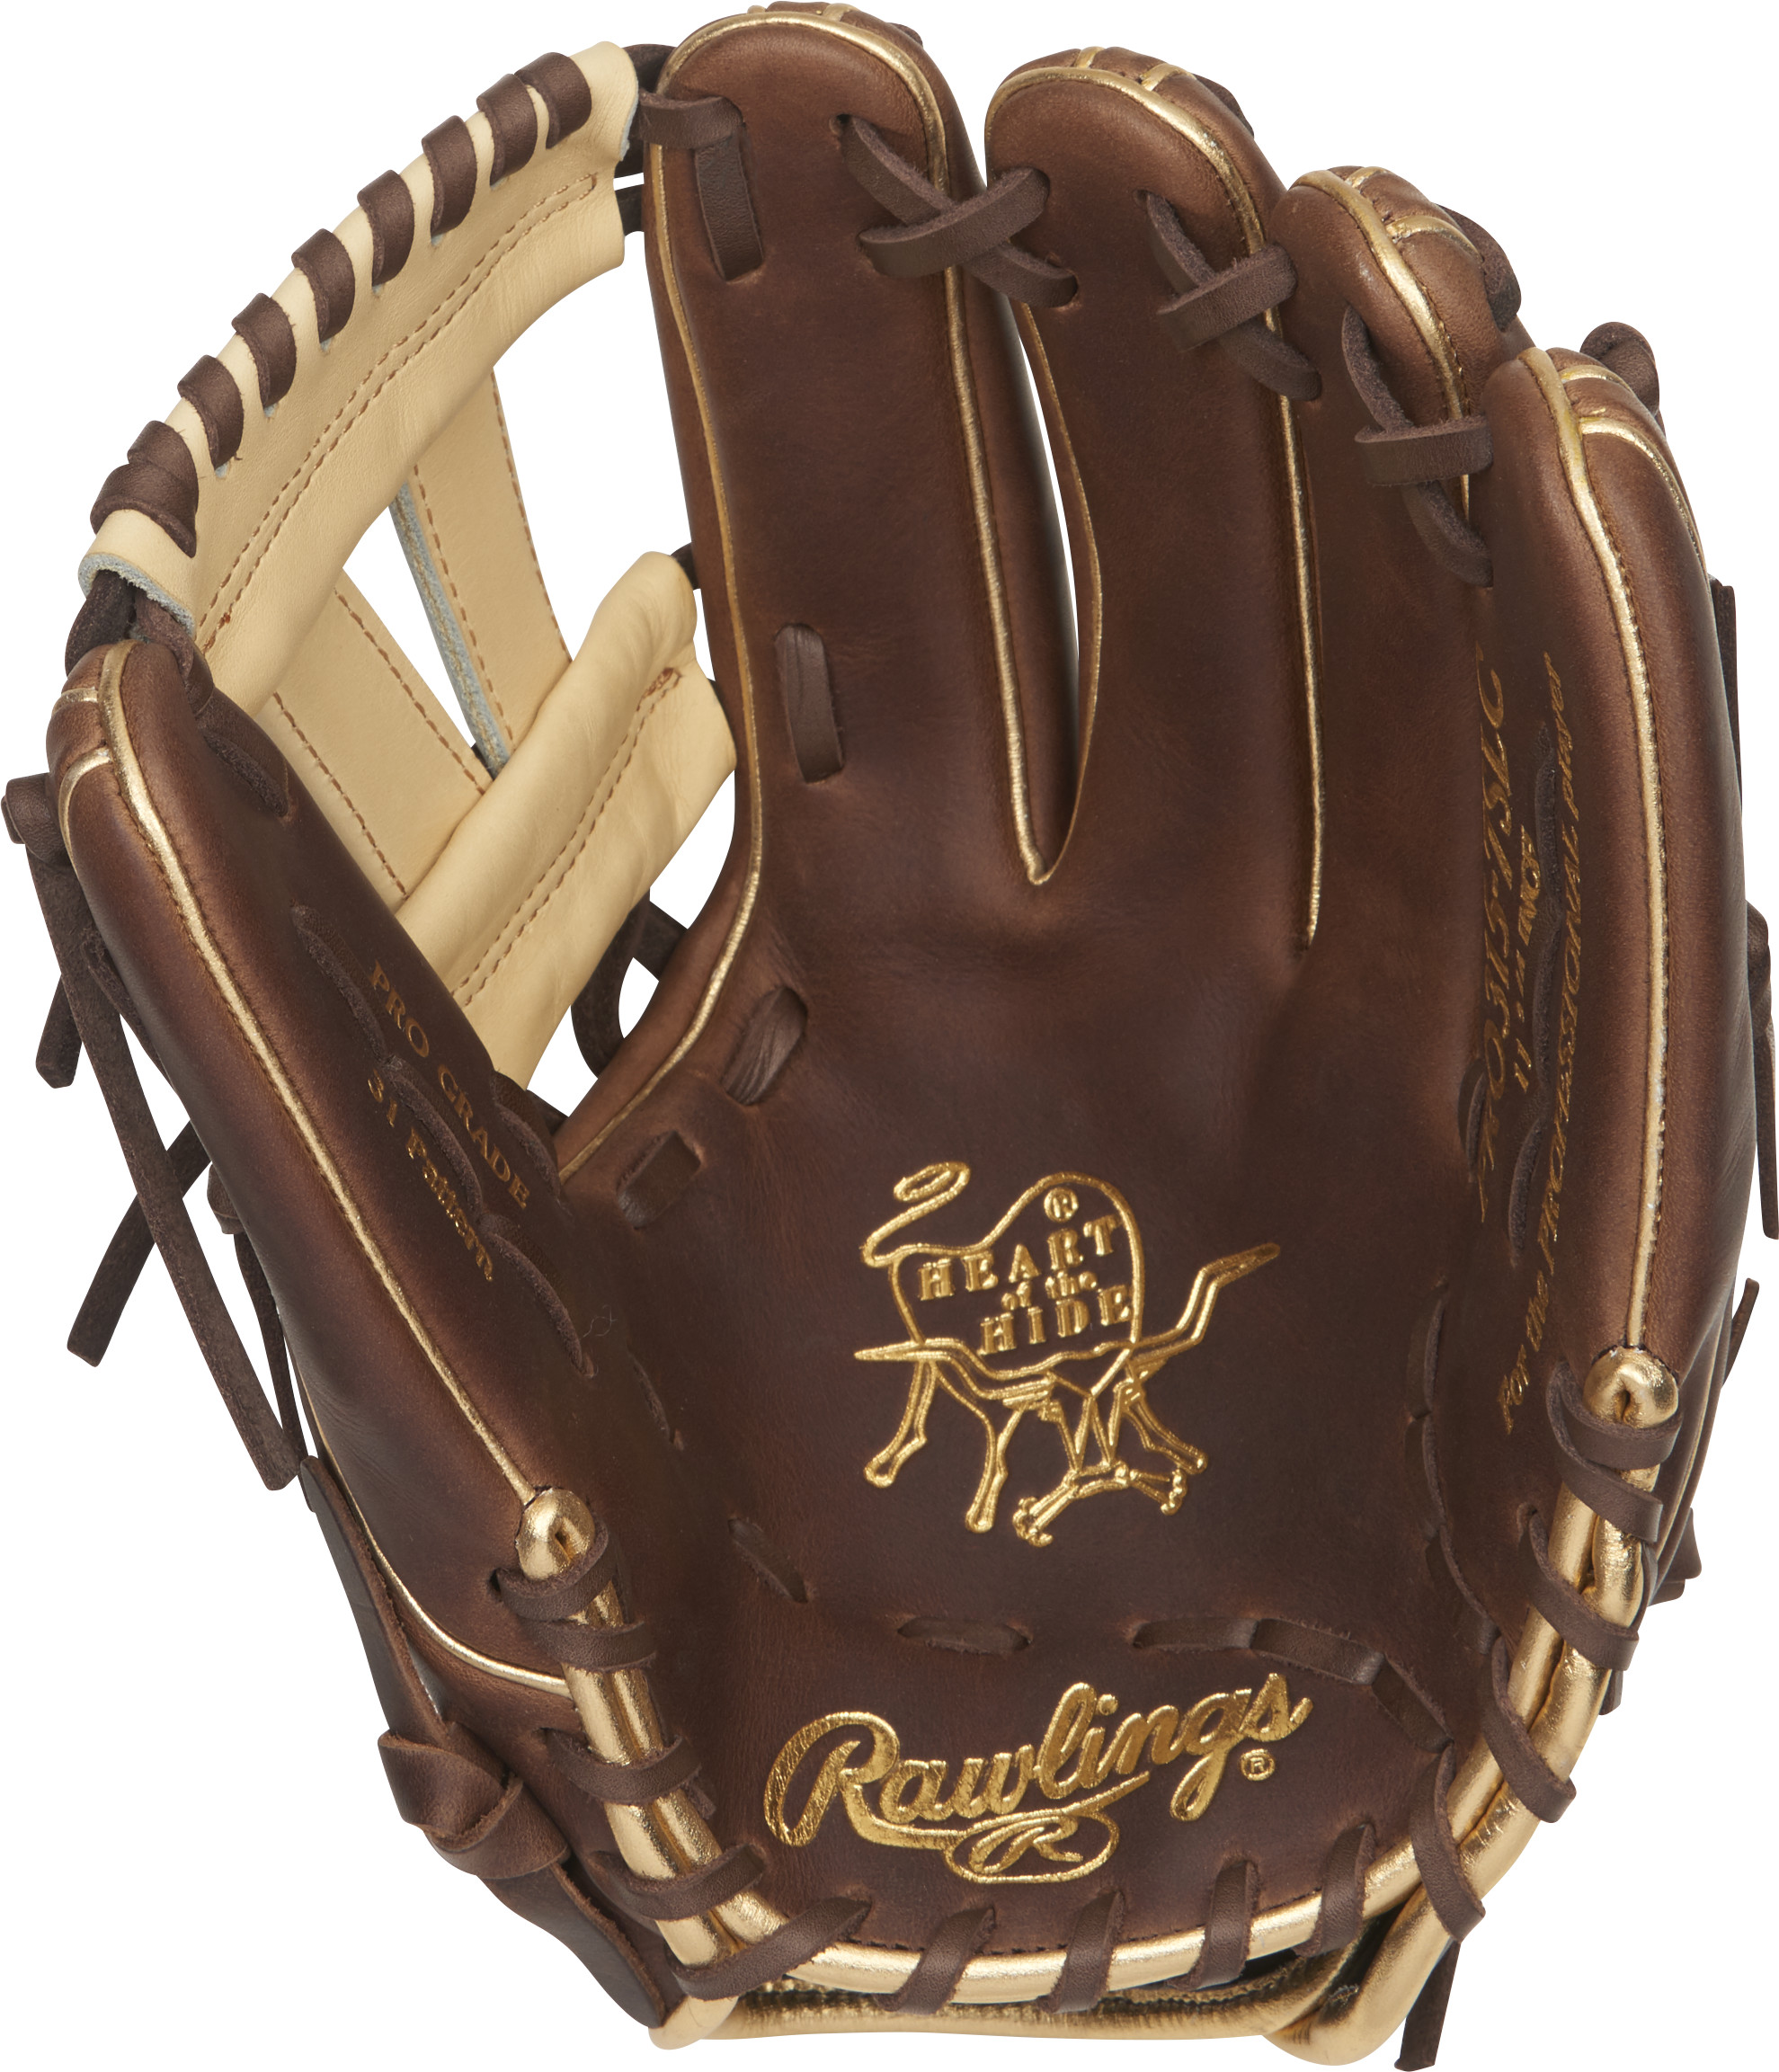 http://www.bestbatdeals.com/images/gloves/rawlings/PRO315-7SLC-1.jpg